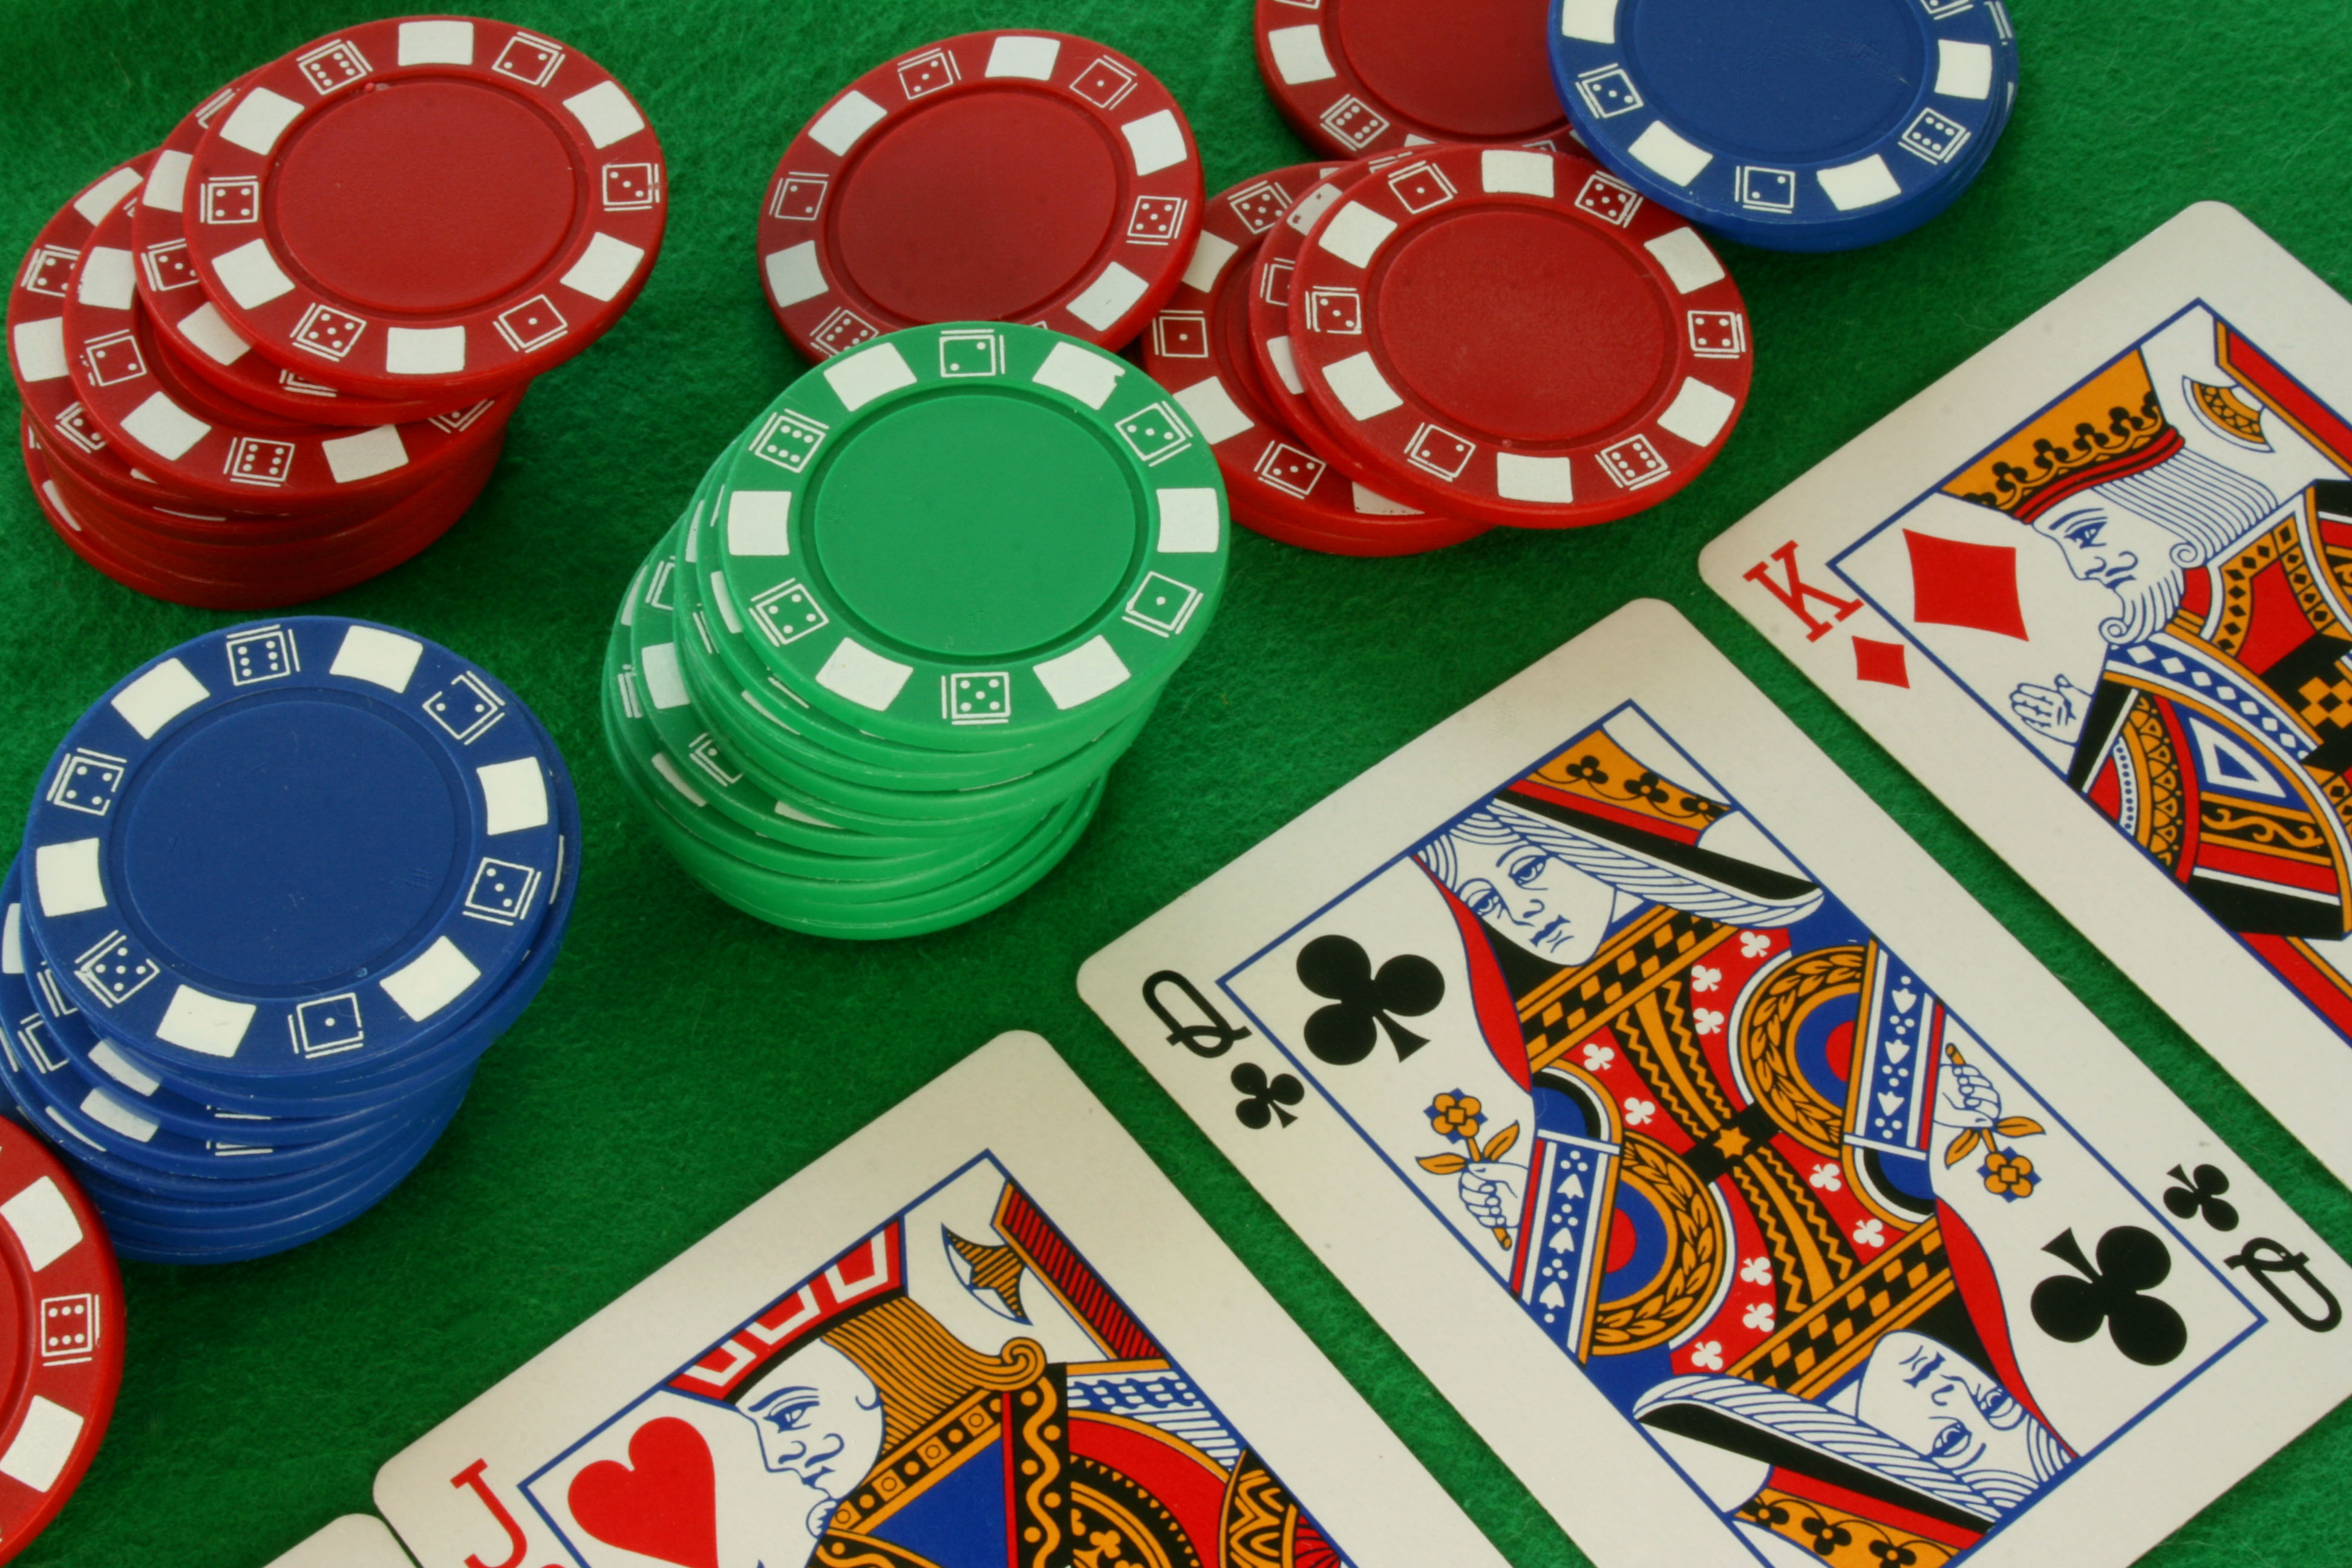 The technology of online casinos that ensures a sense of fair play